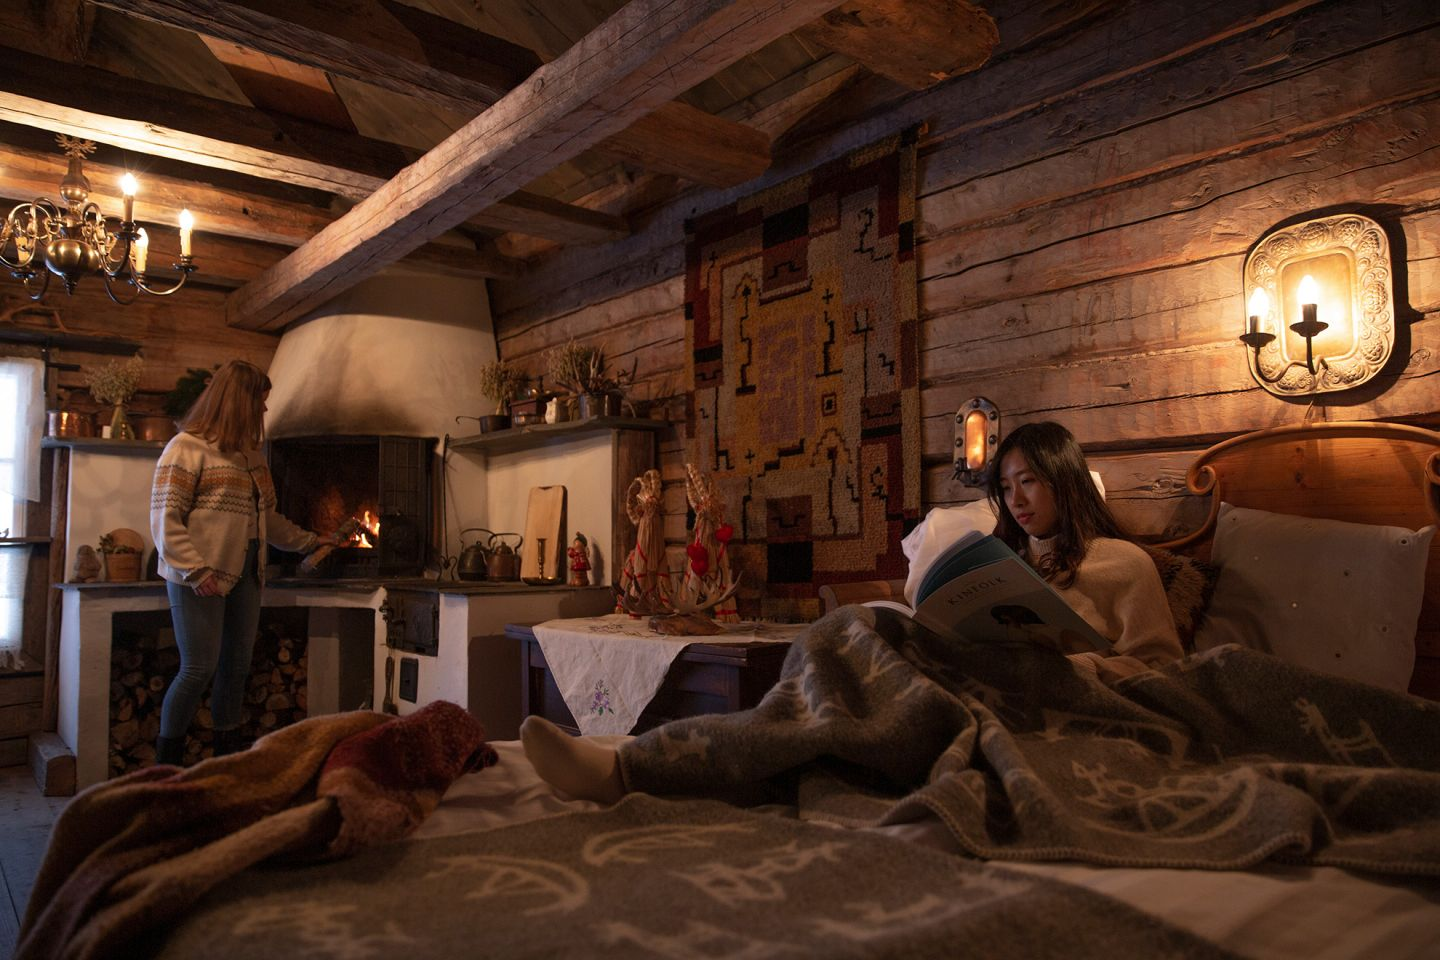 Enjoying a warm cabin on a cold winter day in Finnish Lapland